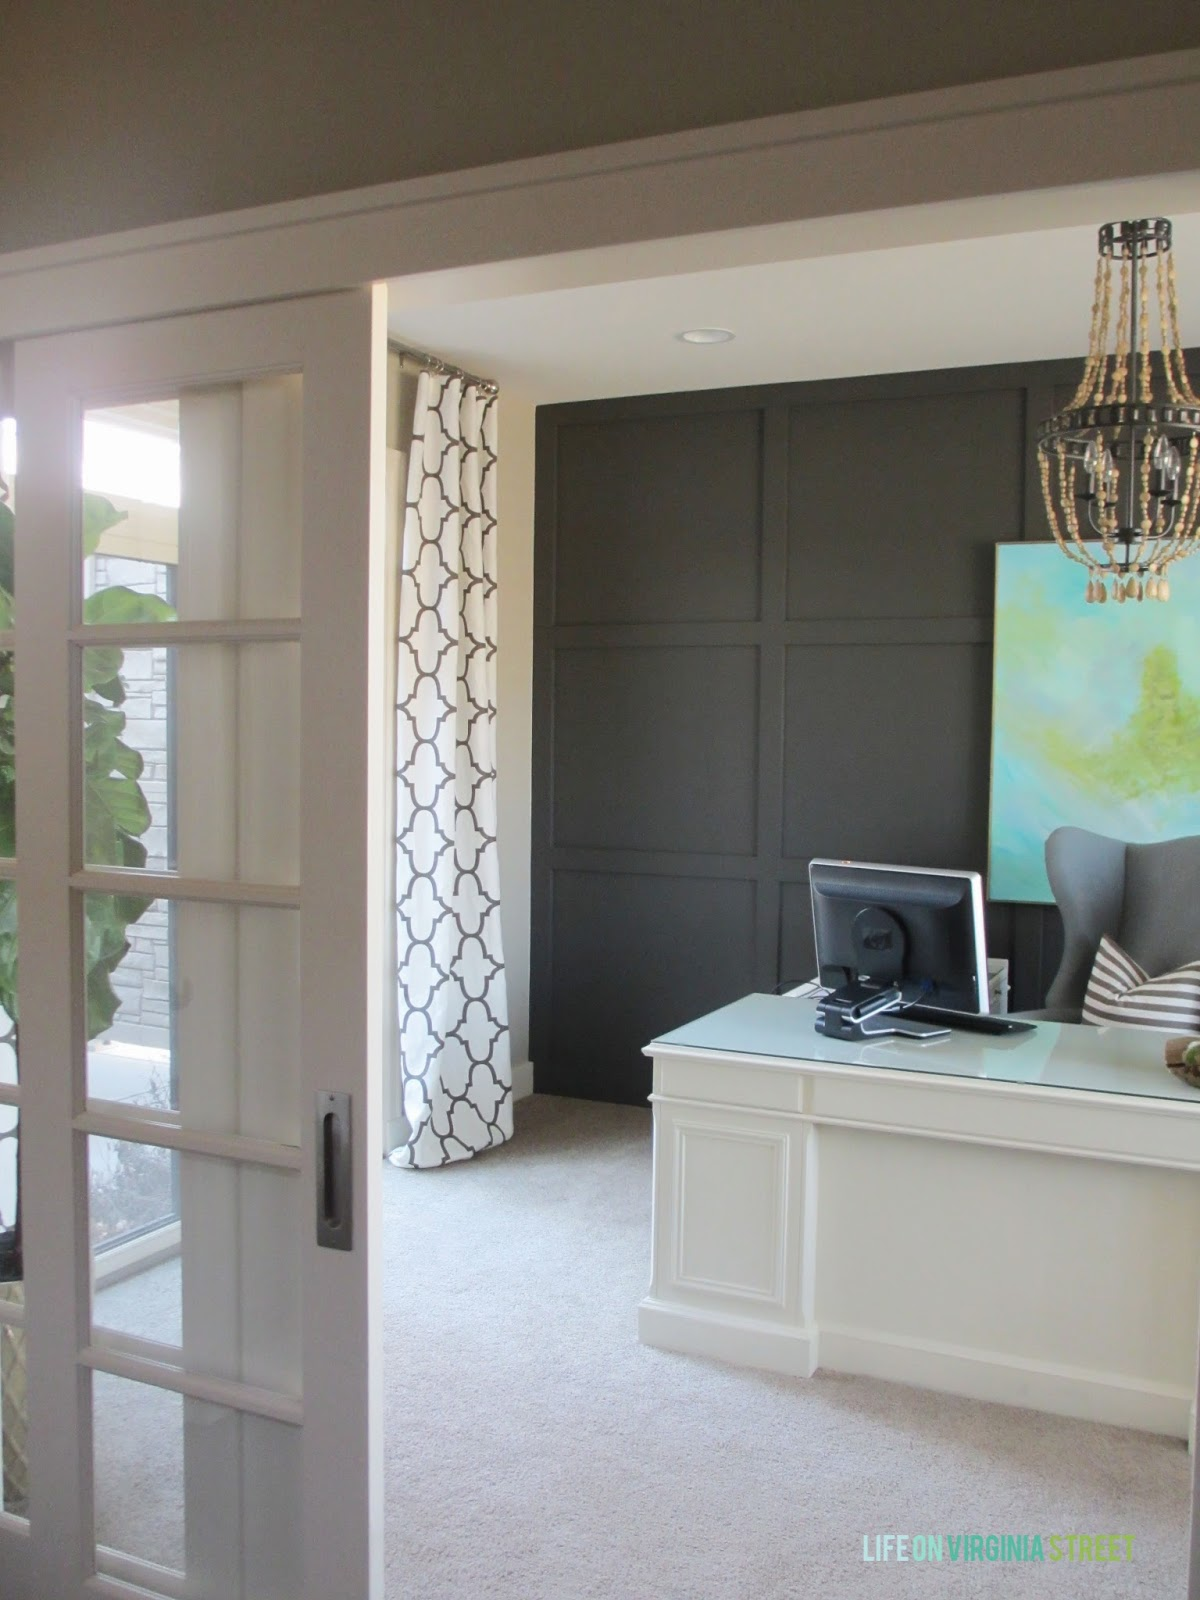 Home office makeover with french pocket sliding doors and Windsor Smith Riad in Clove drapes.